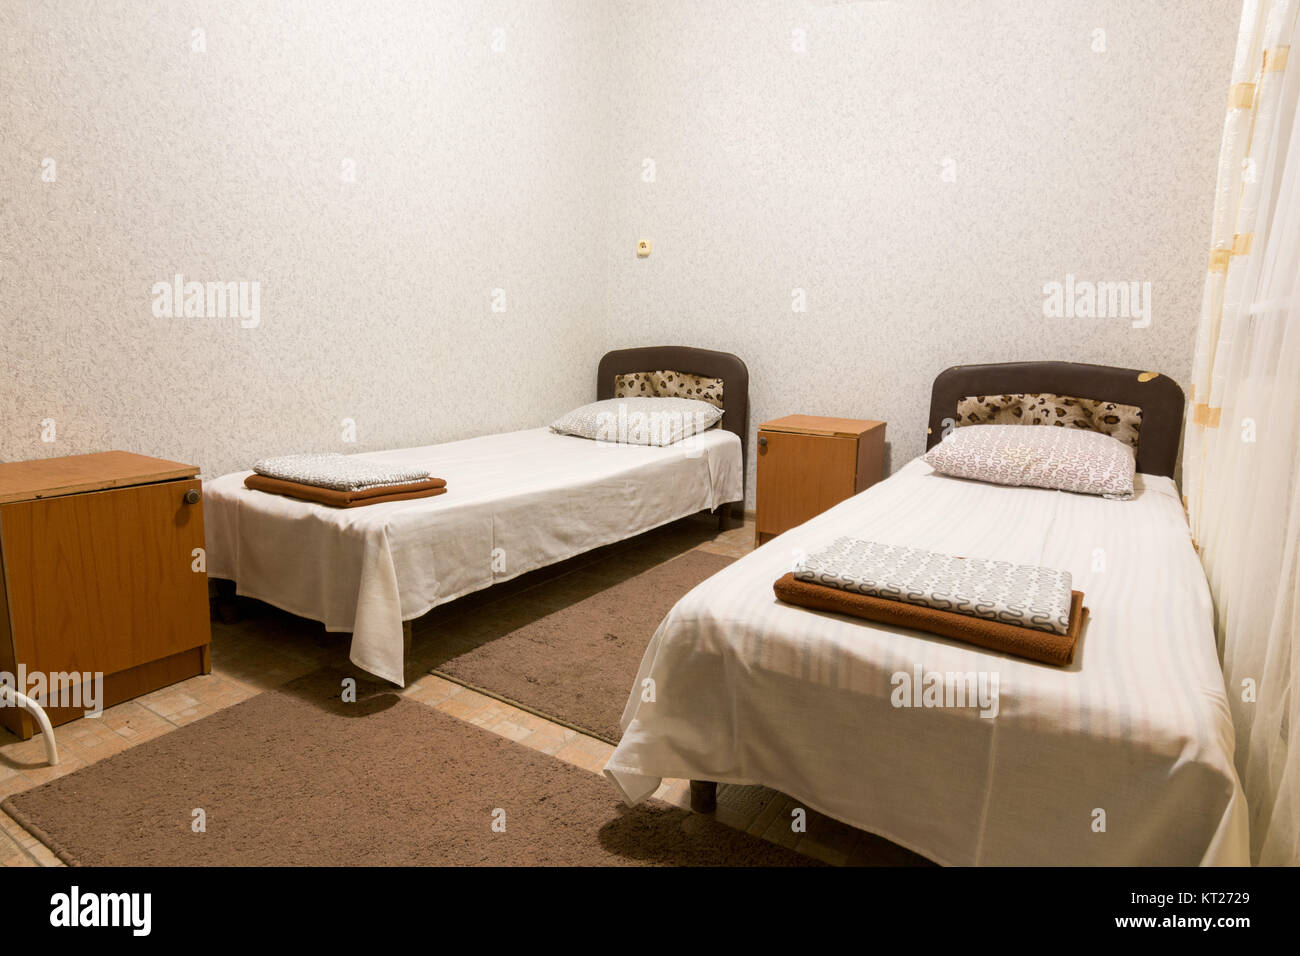 The interior of a small room with two beds Stock Photo: 169694513 ...